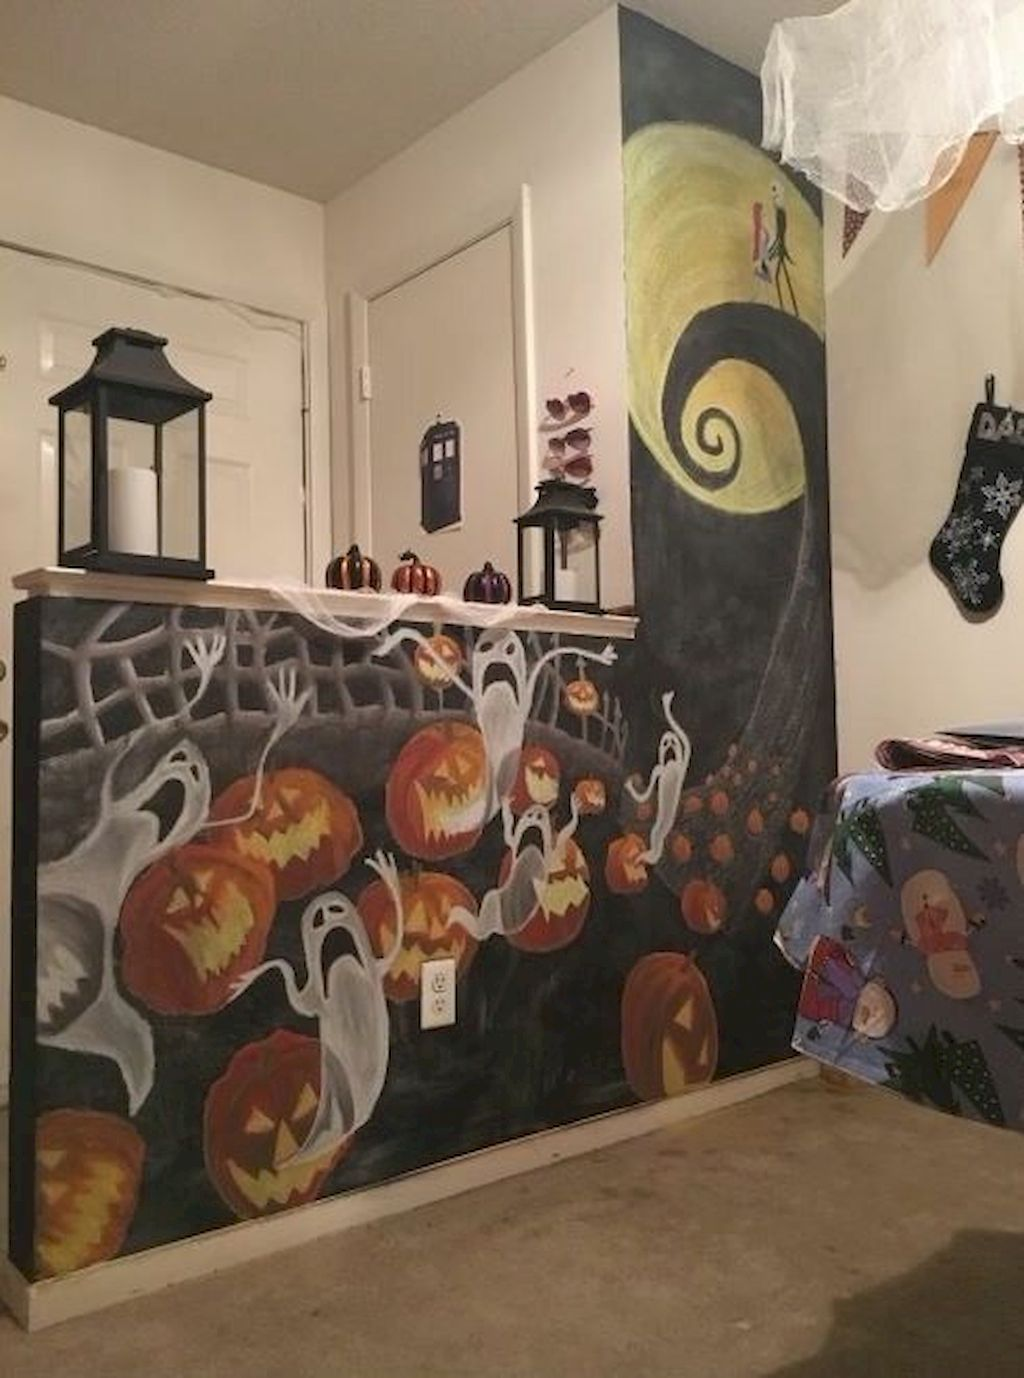 Awesome Excellent Christmas Craft Ideas For Your Living Room Https Hometoz Com Halloween Living Room Christmas Decorations Bedroom Nightmare Before Christmas